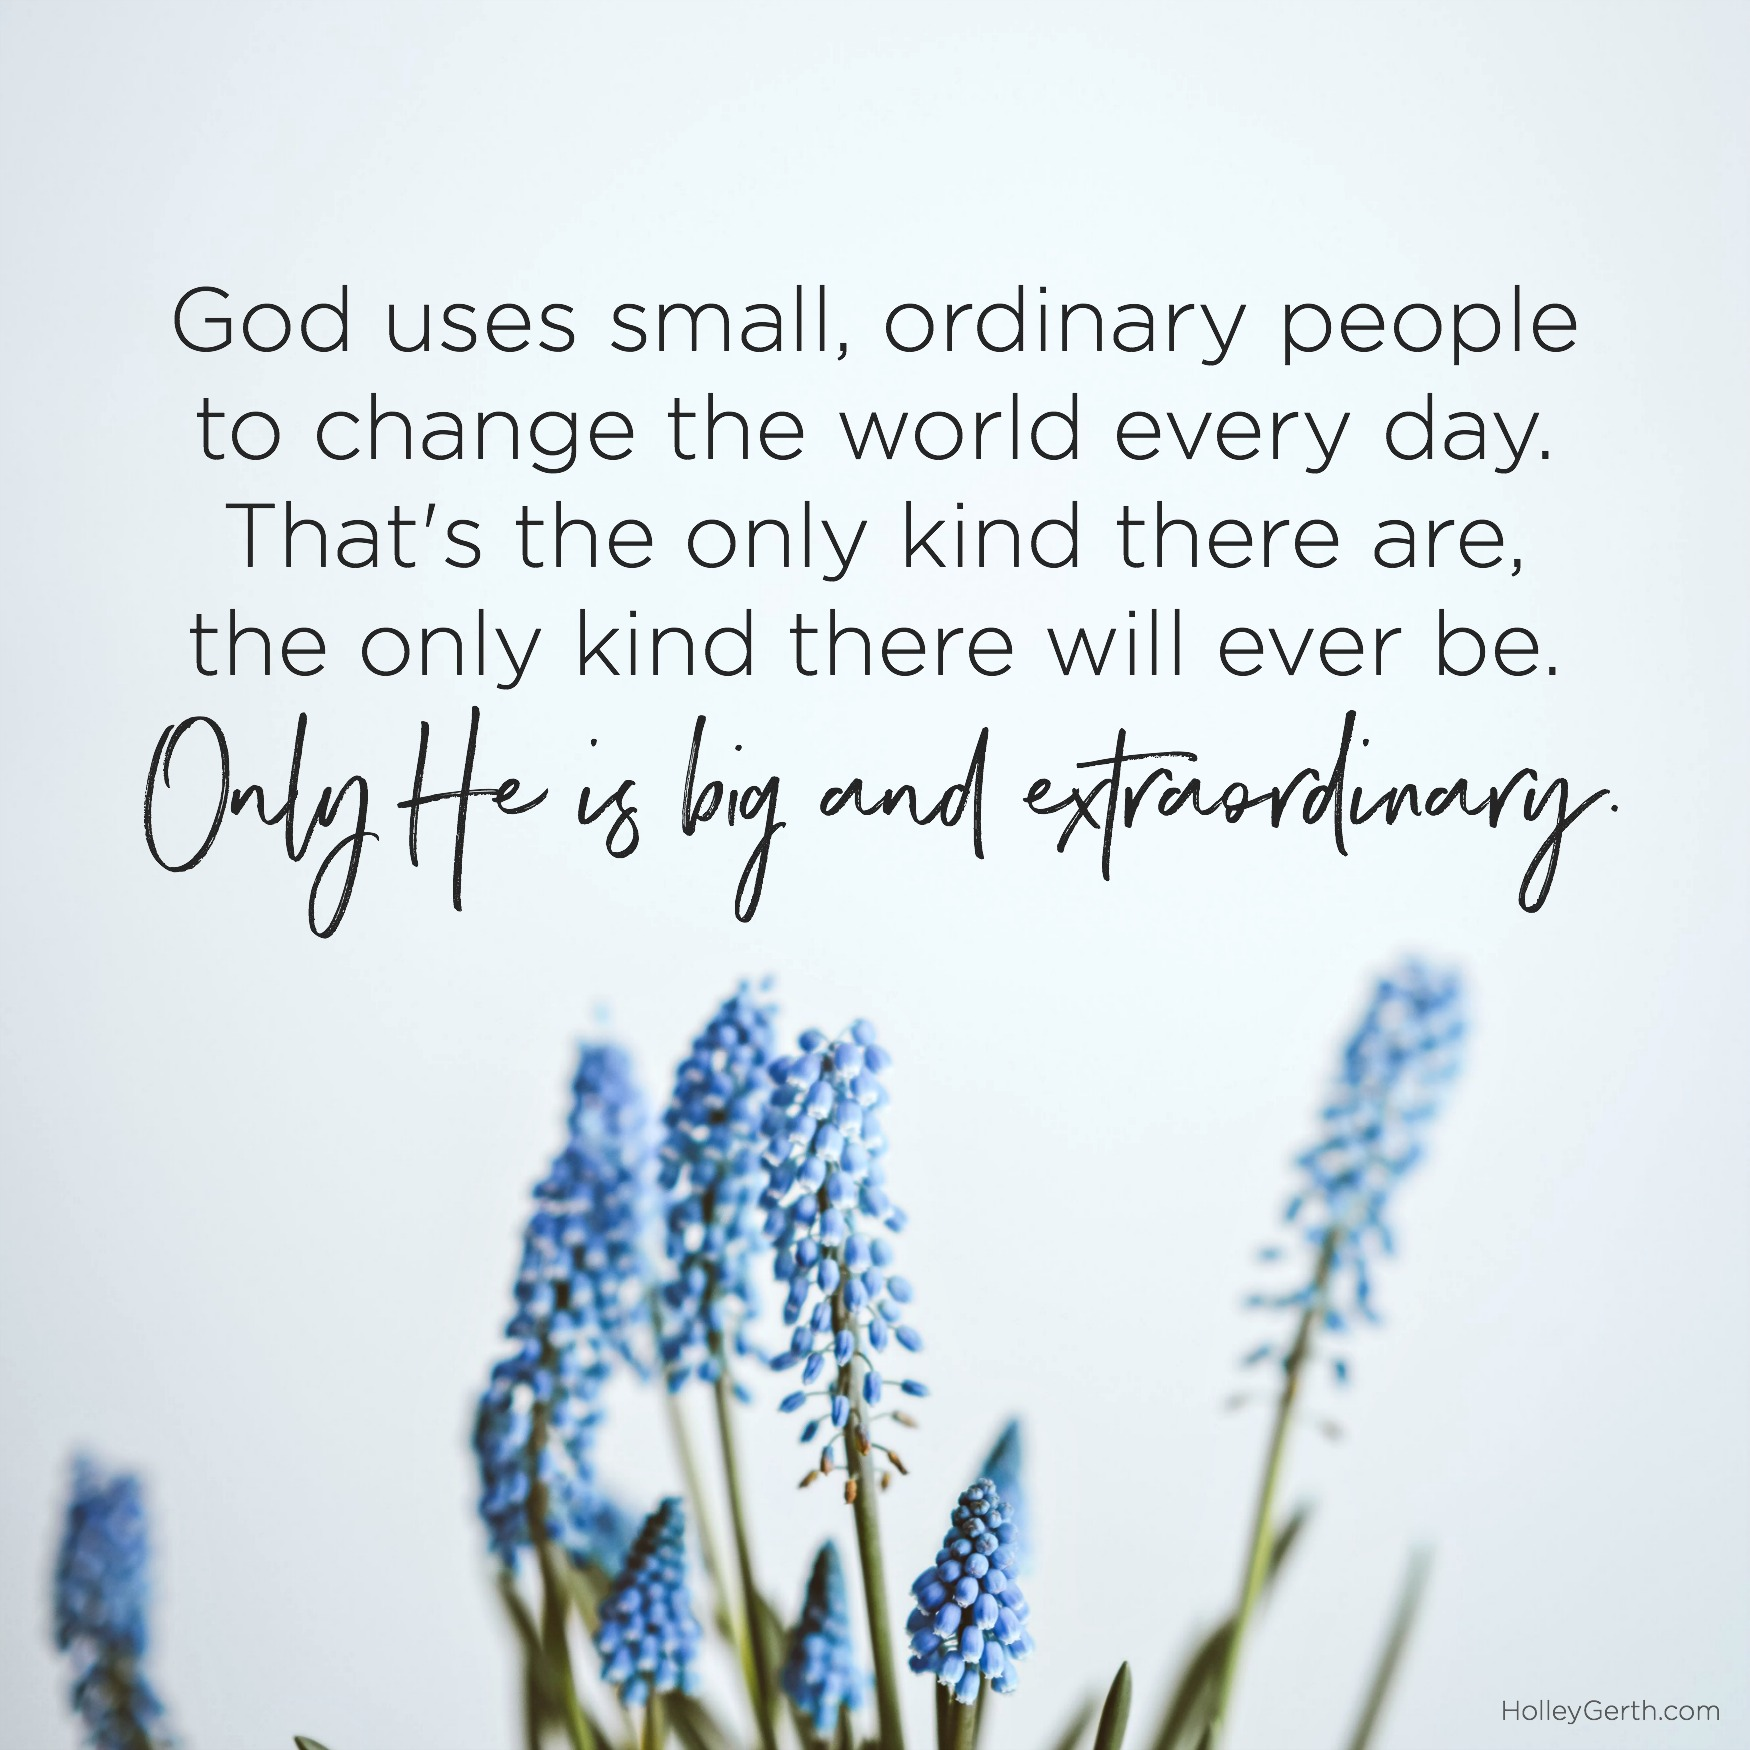 God uses small, ordinary people to change the world every day.